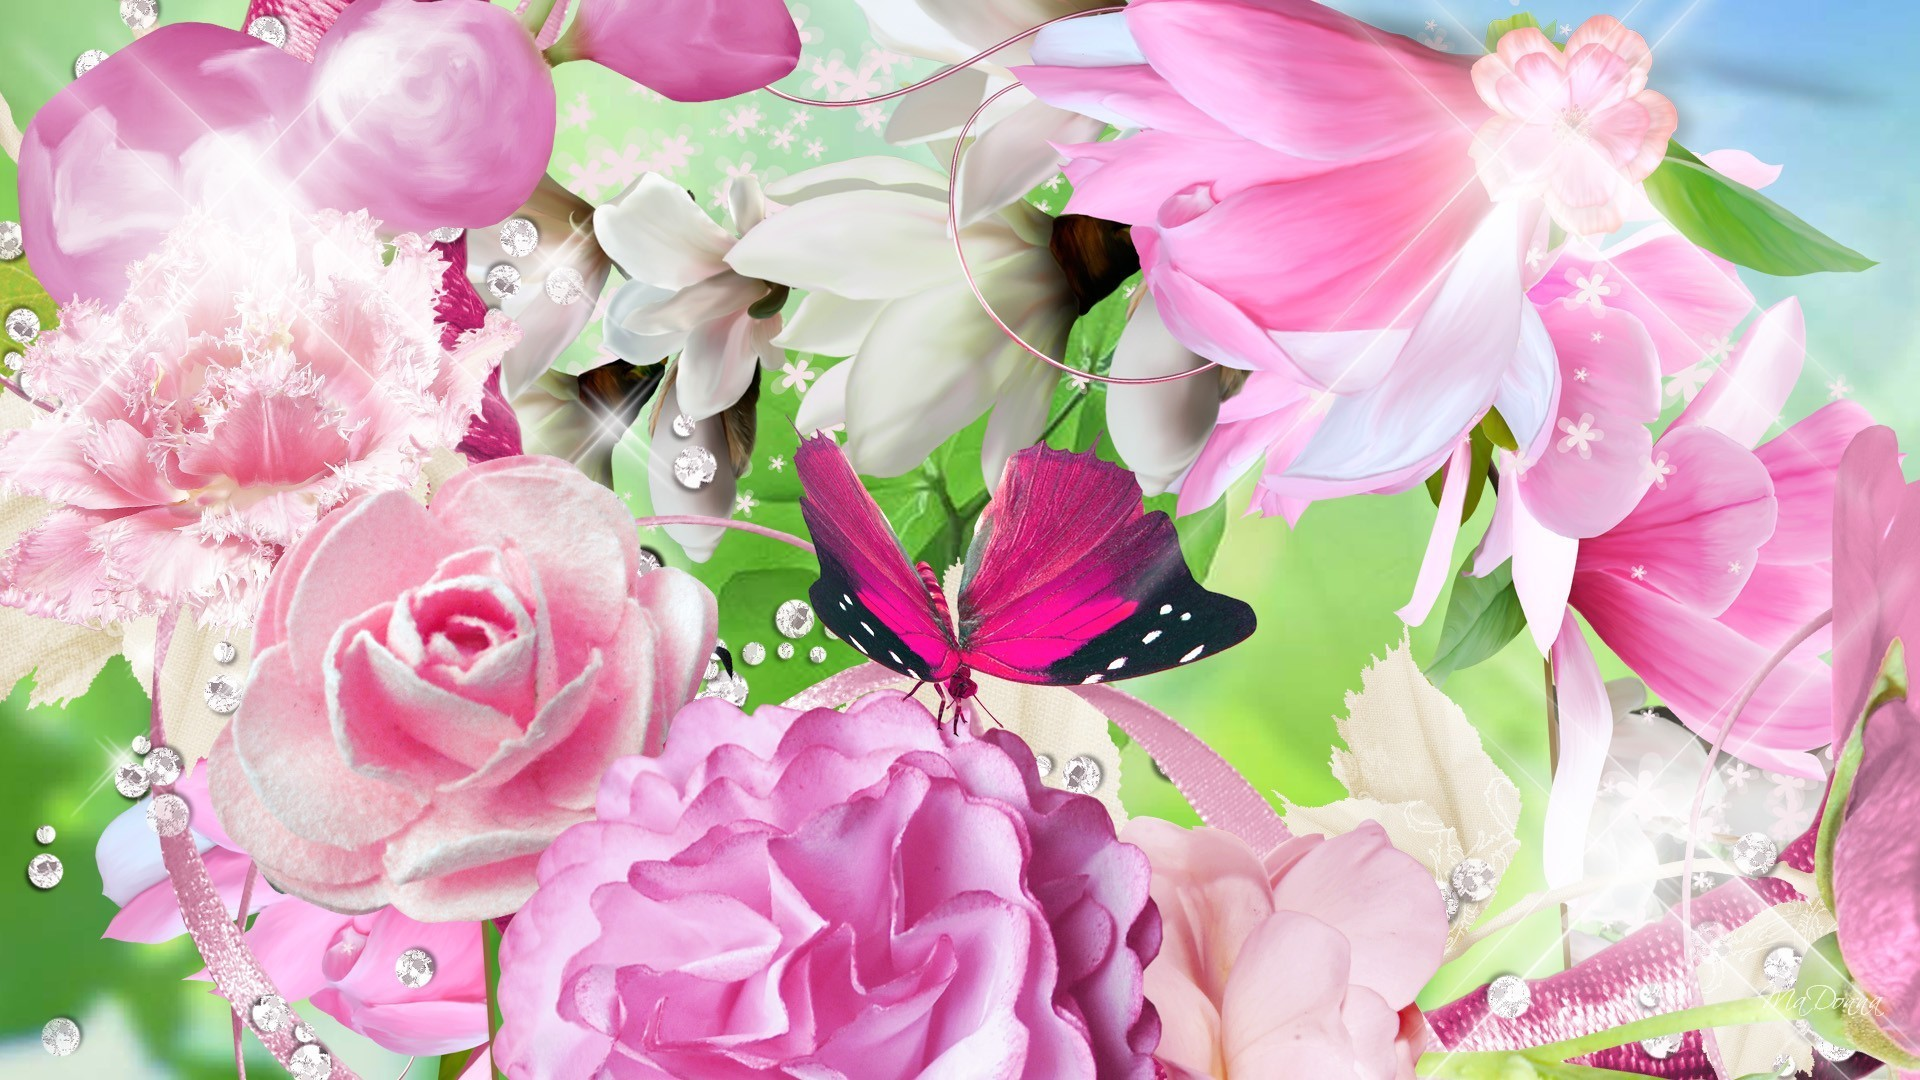 1920x1080 Peony Tag - Summer Bouquet Flowers Butterfly Roses Pink Peony Fleurs  Papillon Spring Floral BouquetNFP Flower